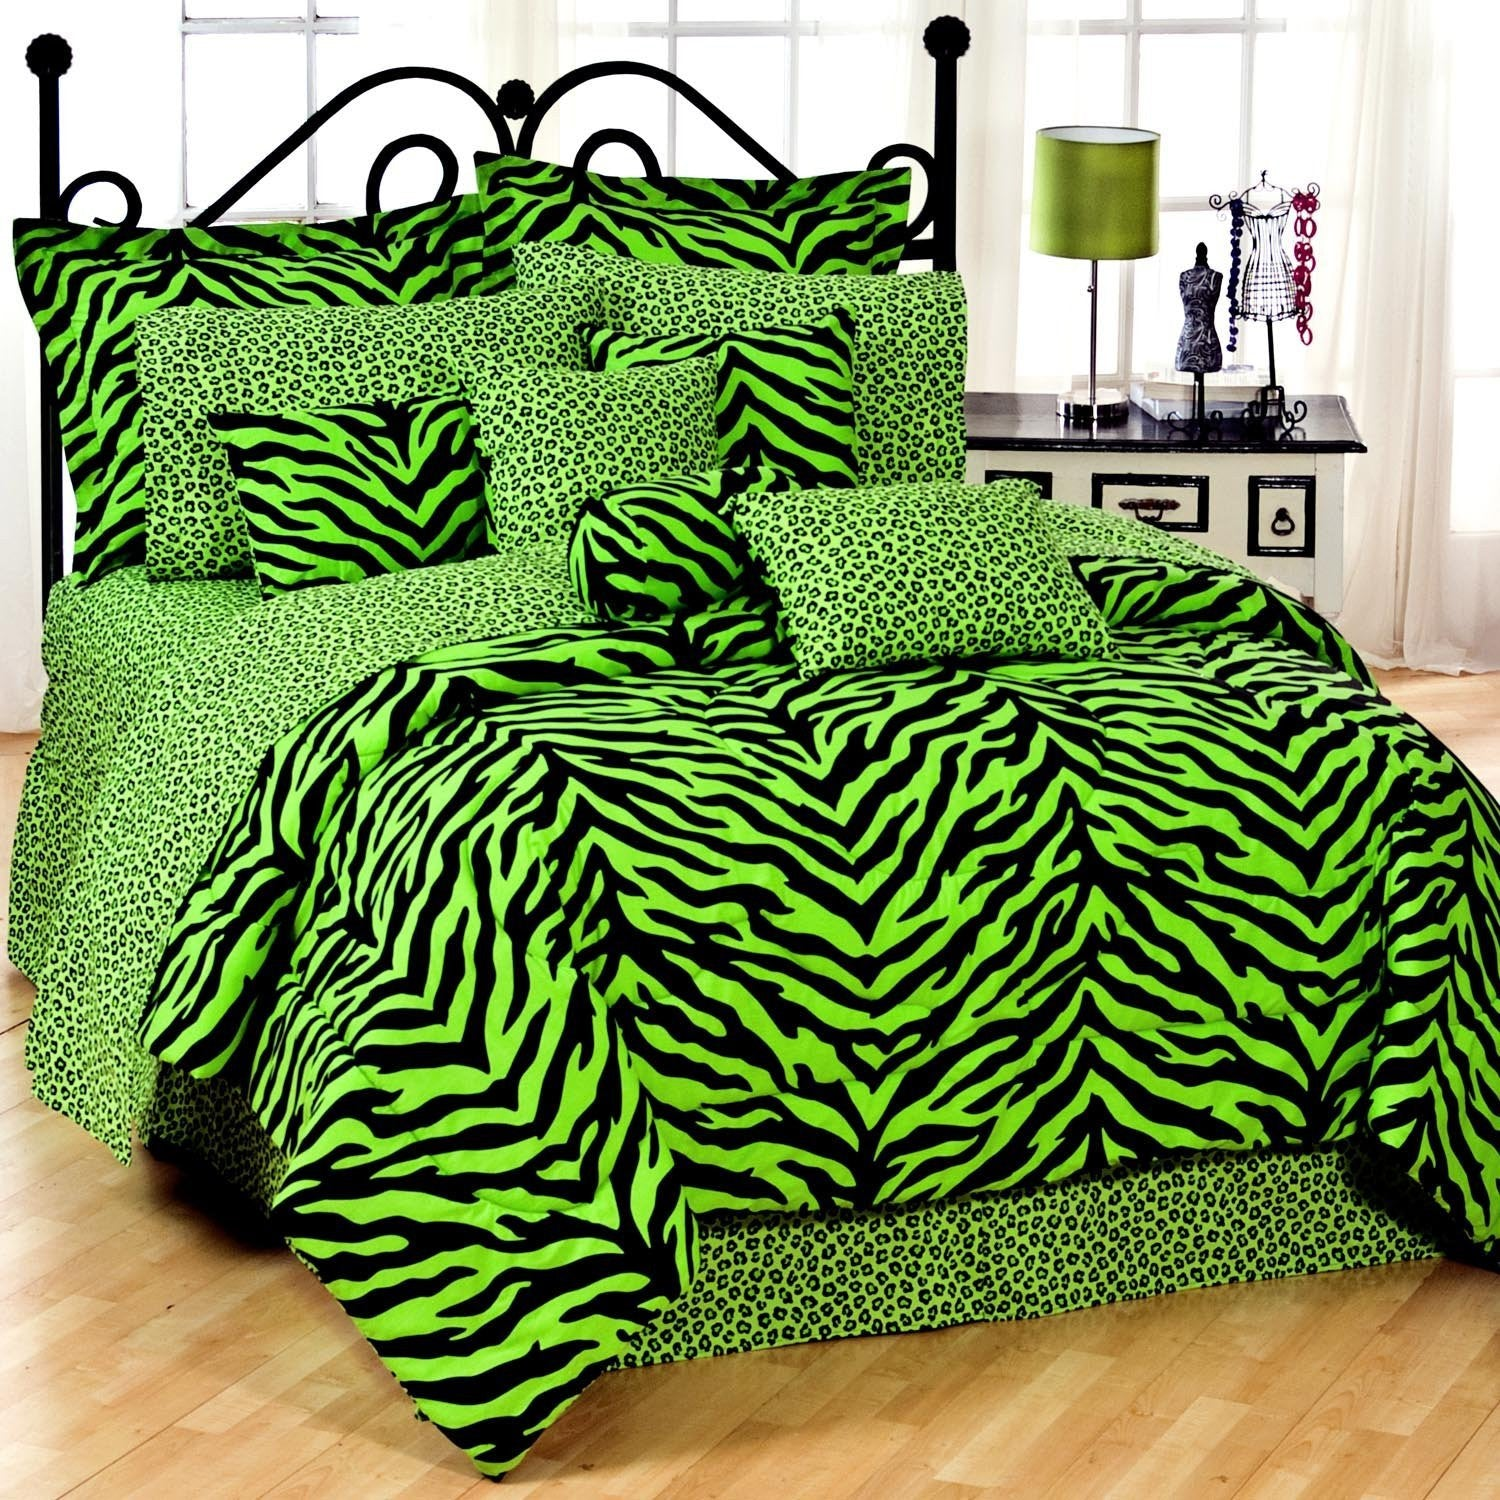 Zebra Print Bed Bed in a Bag - Lime Green and Black - XL Twin - Back40Trading2